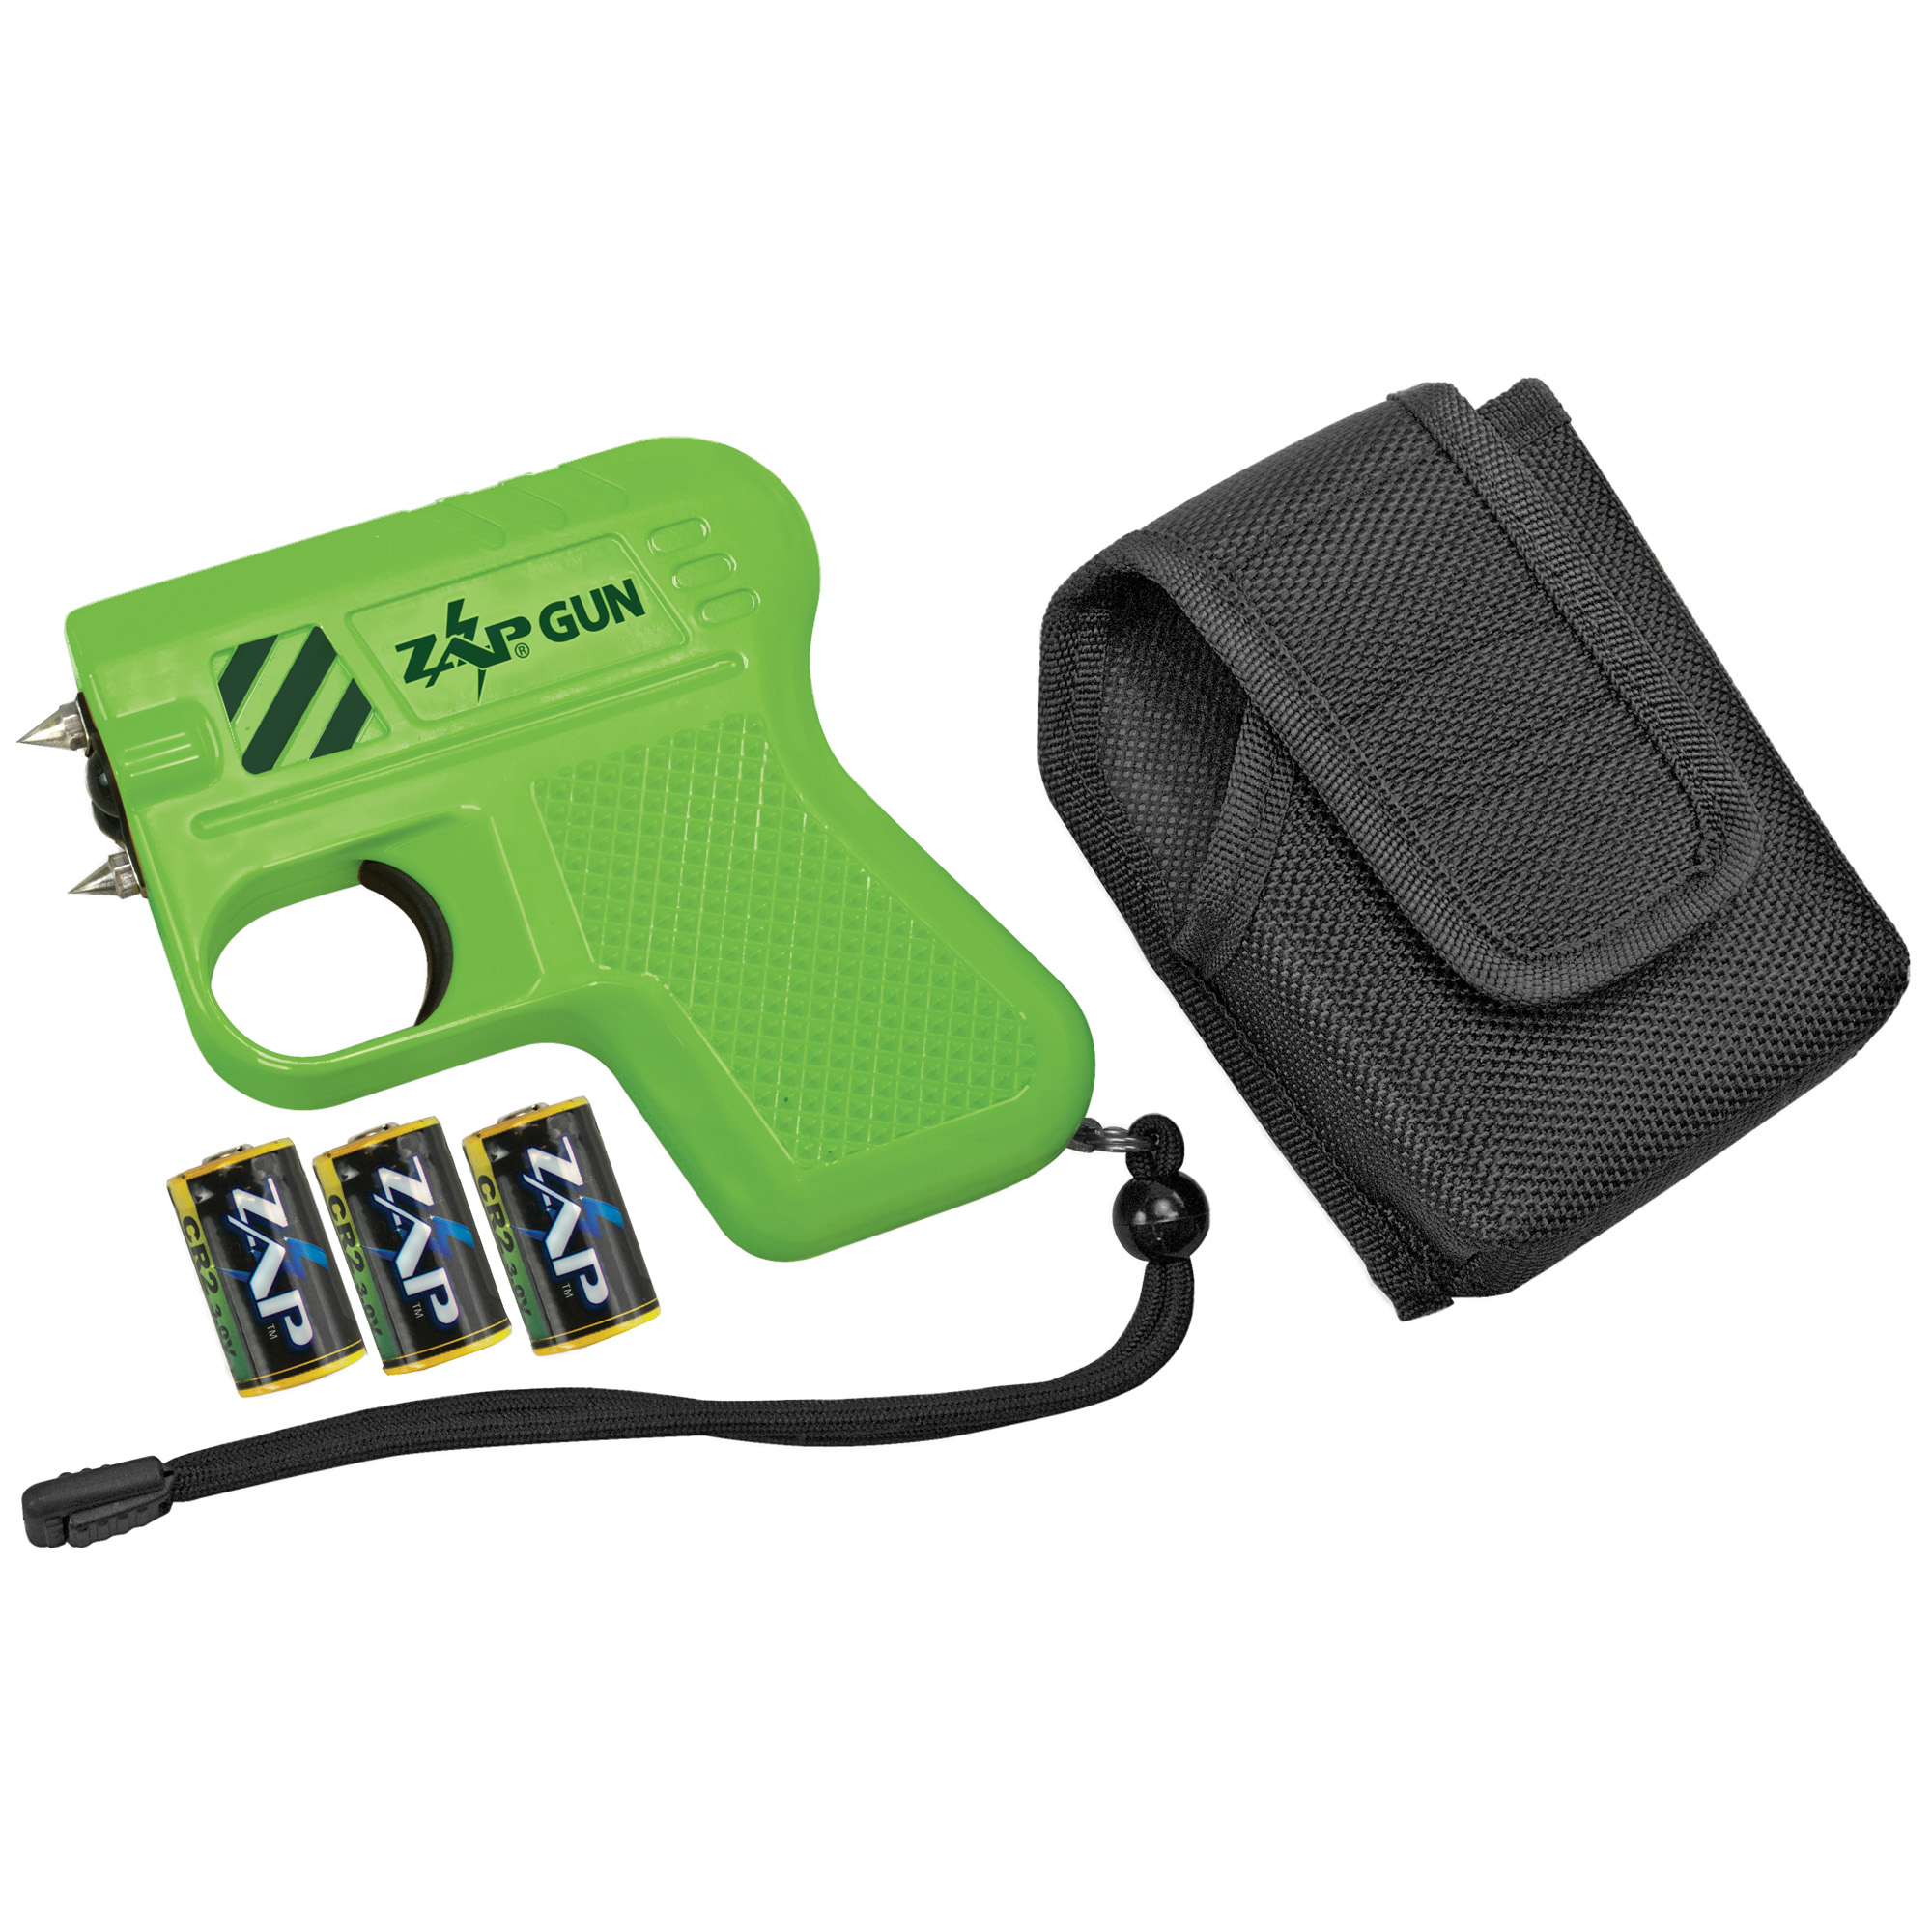 """PS Products specializes in the design"""" manufacturing"""" and distribution of non-lethal personal protection products. Since 1992"""" they have provided the best in quality and service at competitive prices."""